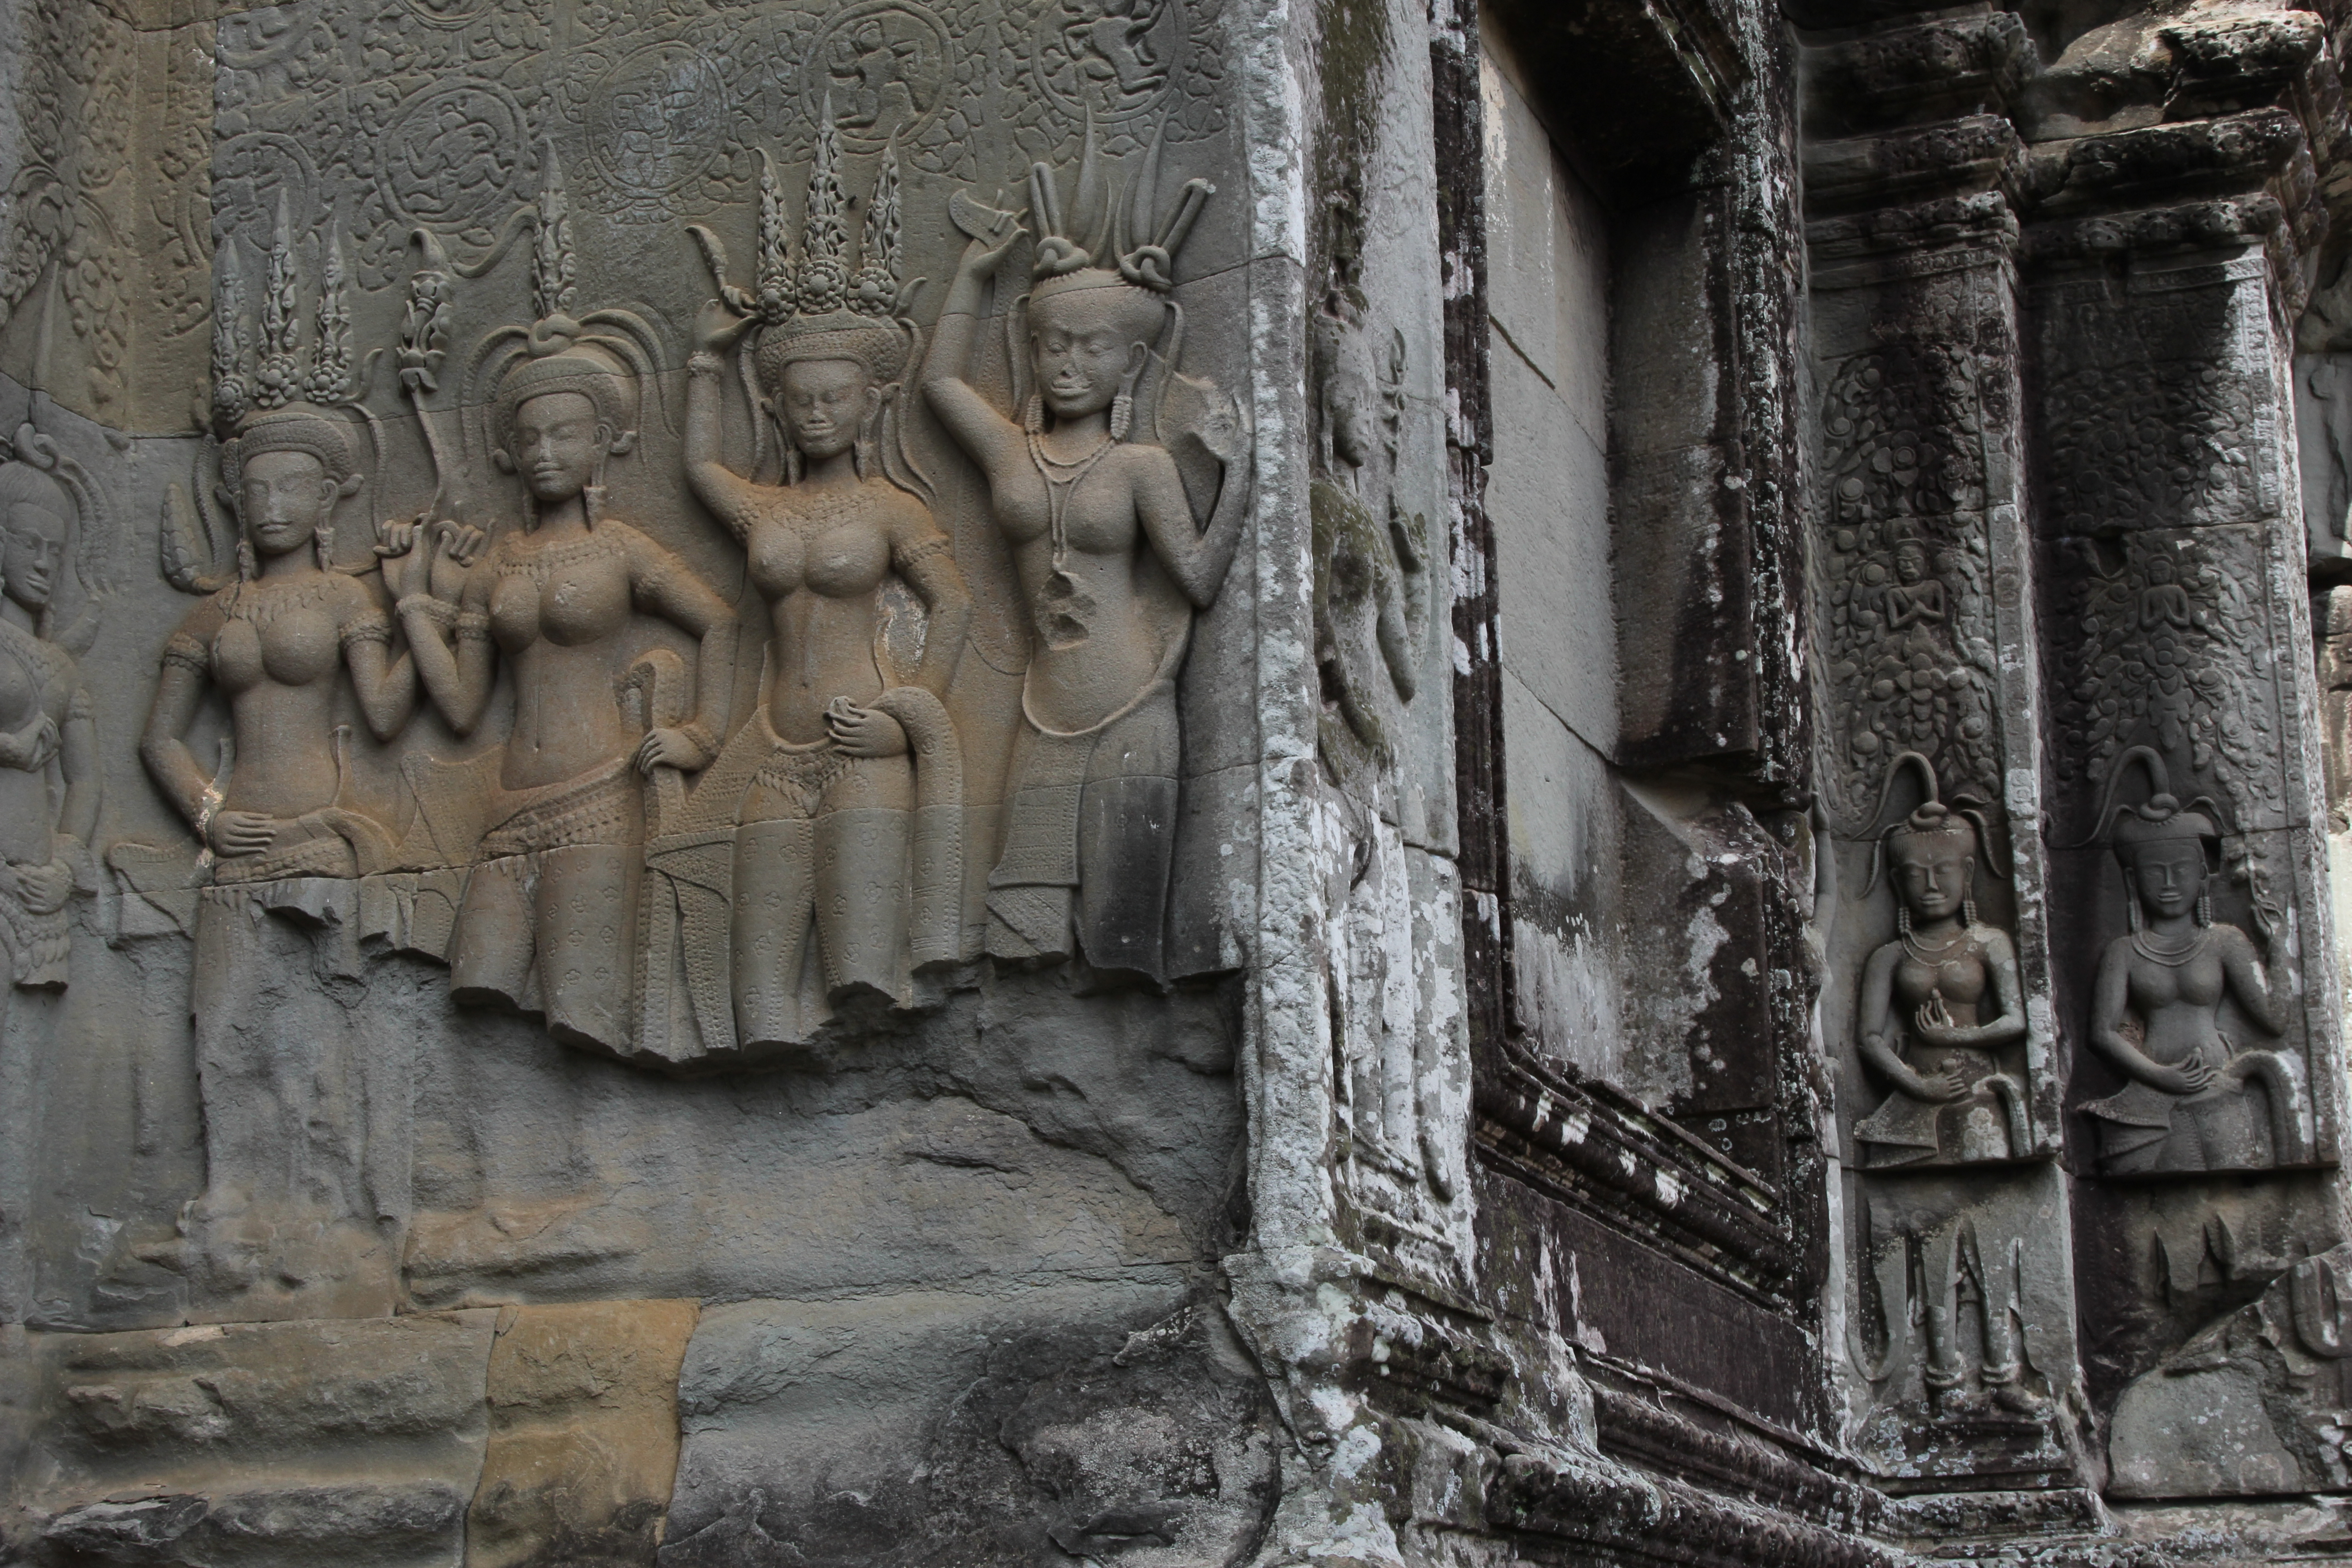 Apsaras or heavenly nymphs on the walls of Angkor Wat.